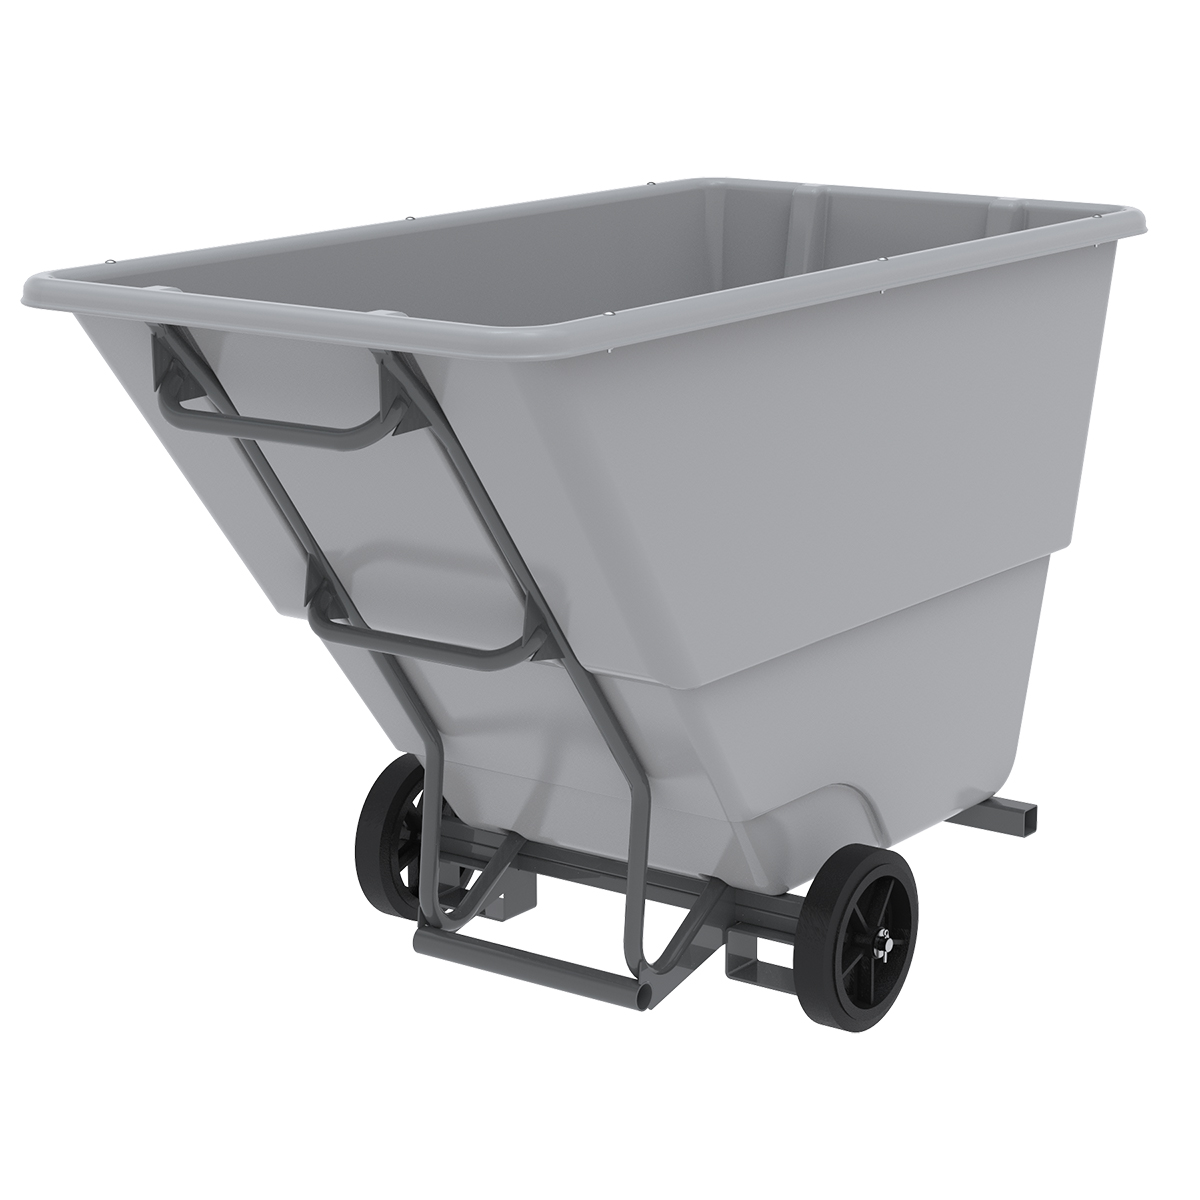 Akro-Tilt Truck w/ Fork Channels Heavy-Duty 200 Gal, 33 x 66 x 42, Gray (77510FGREY).  This item sold in carton quantities of 1.